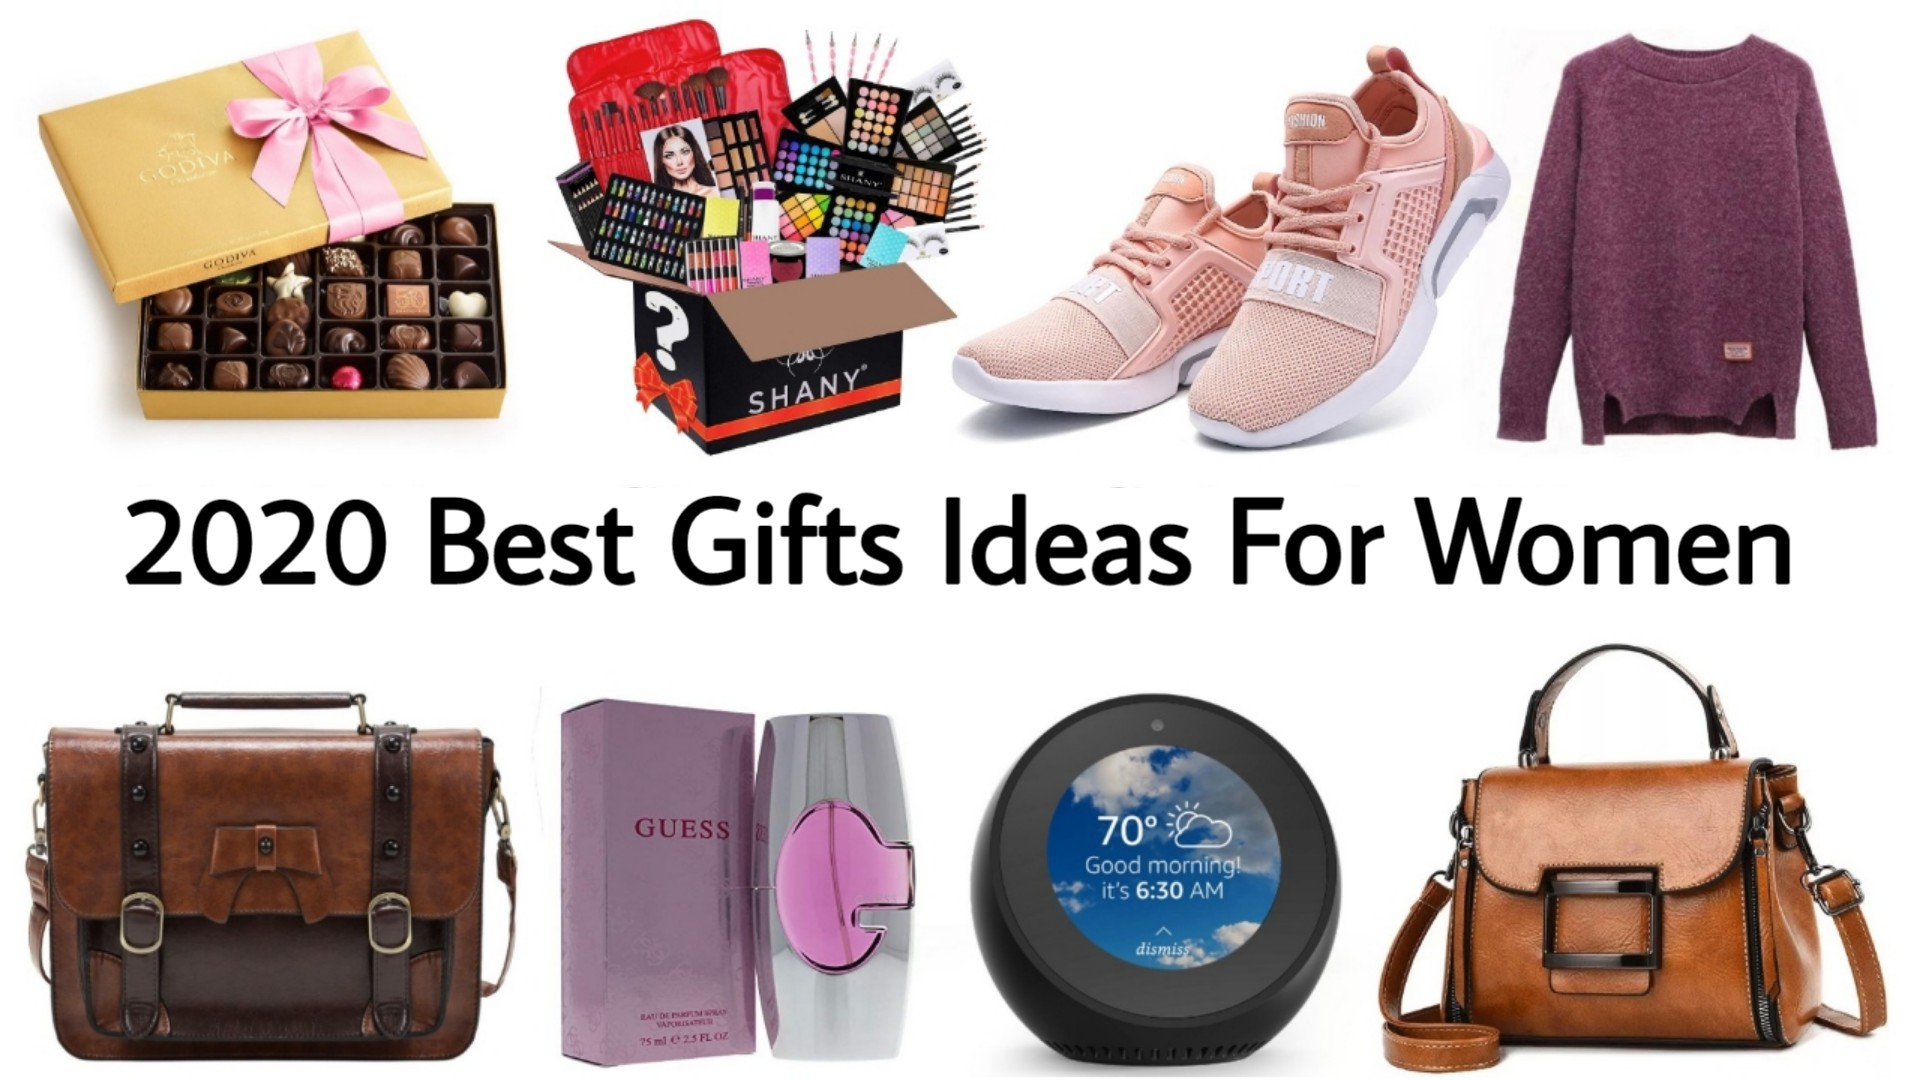 Best Christmas Gifts for Women 2021 | Best Birthday Gifts for Women 2021